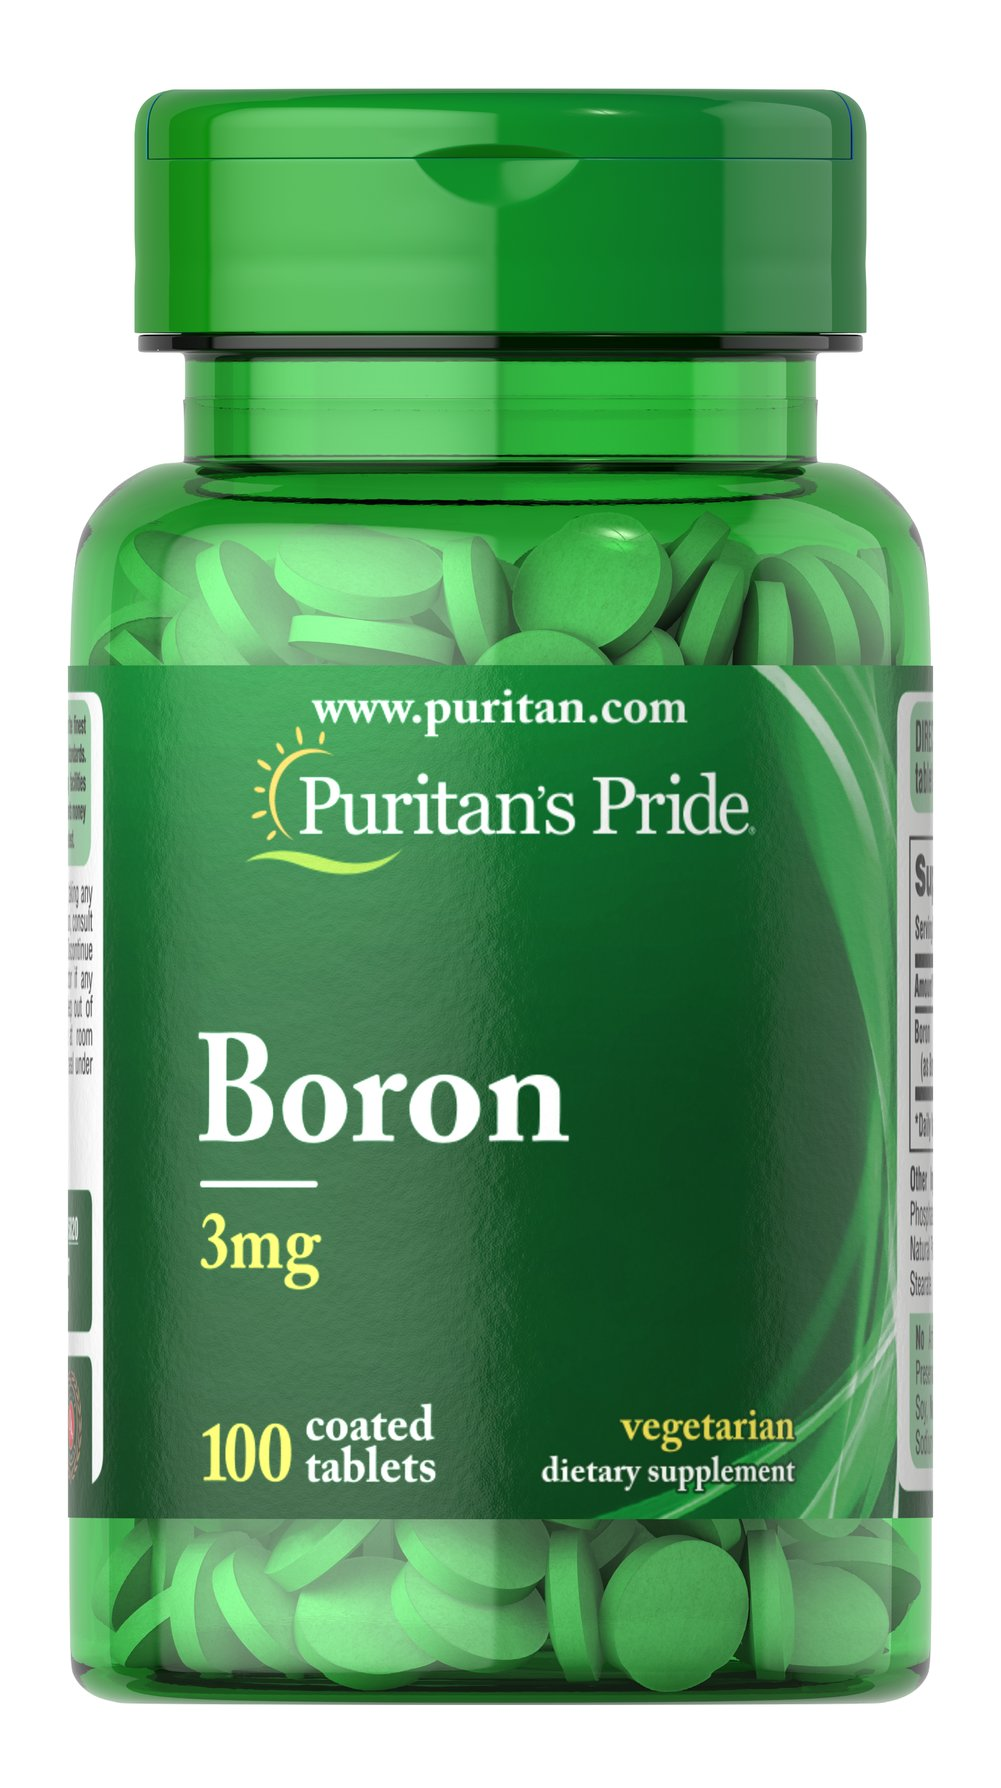 Boron 3 mg Thumbnail Alternate Bottle View